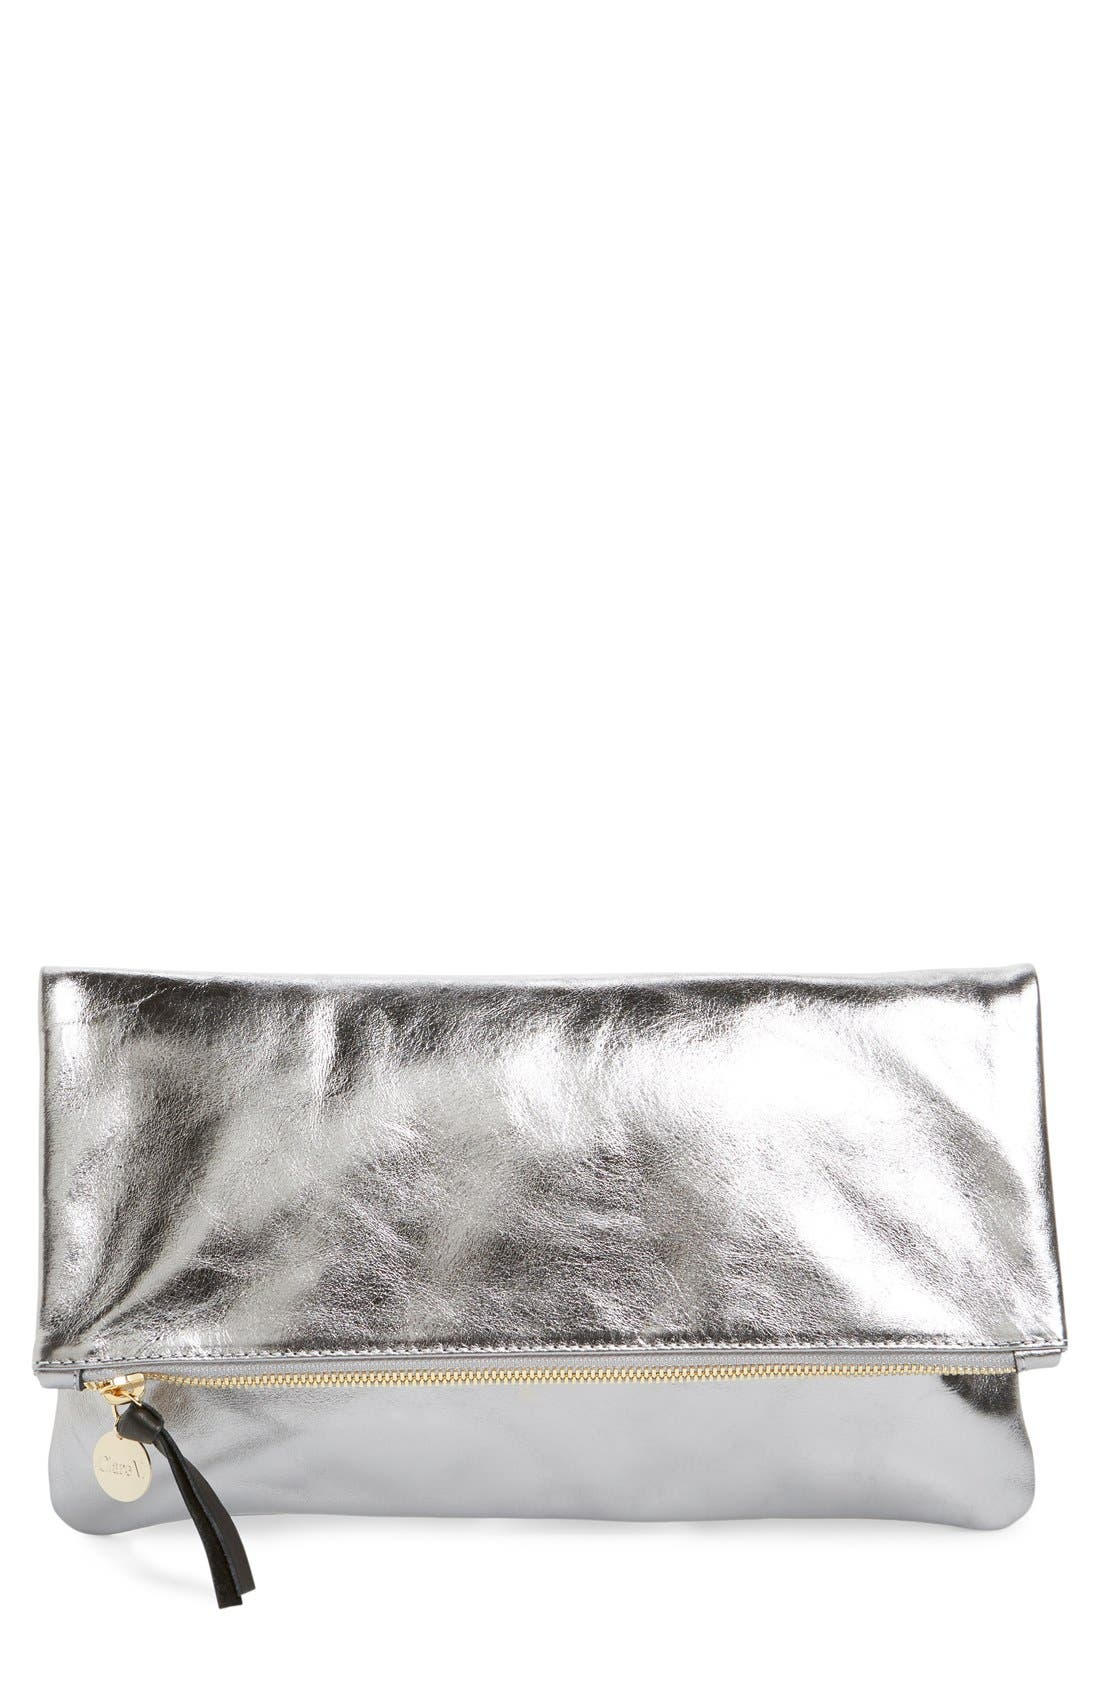 Clare V. 'Maison' Metallic Leather Foldover Clutch